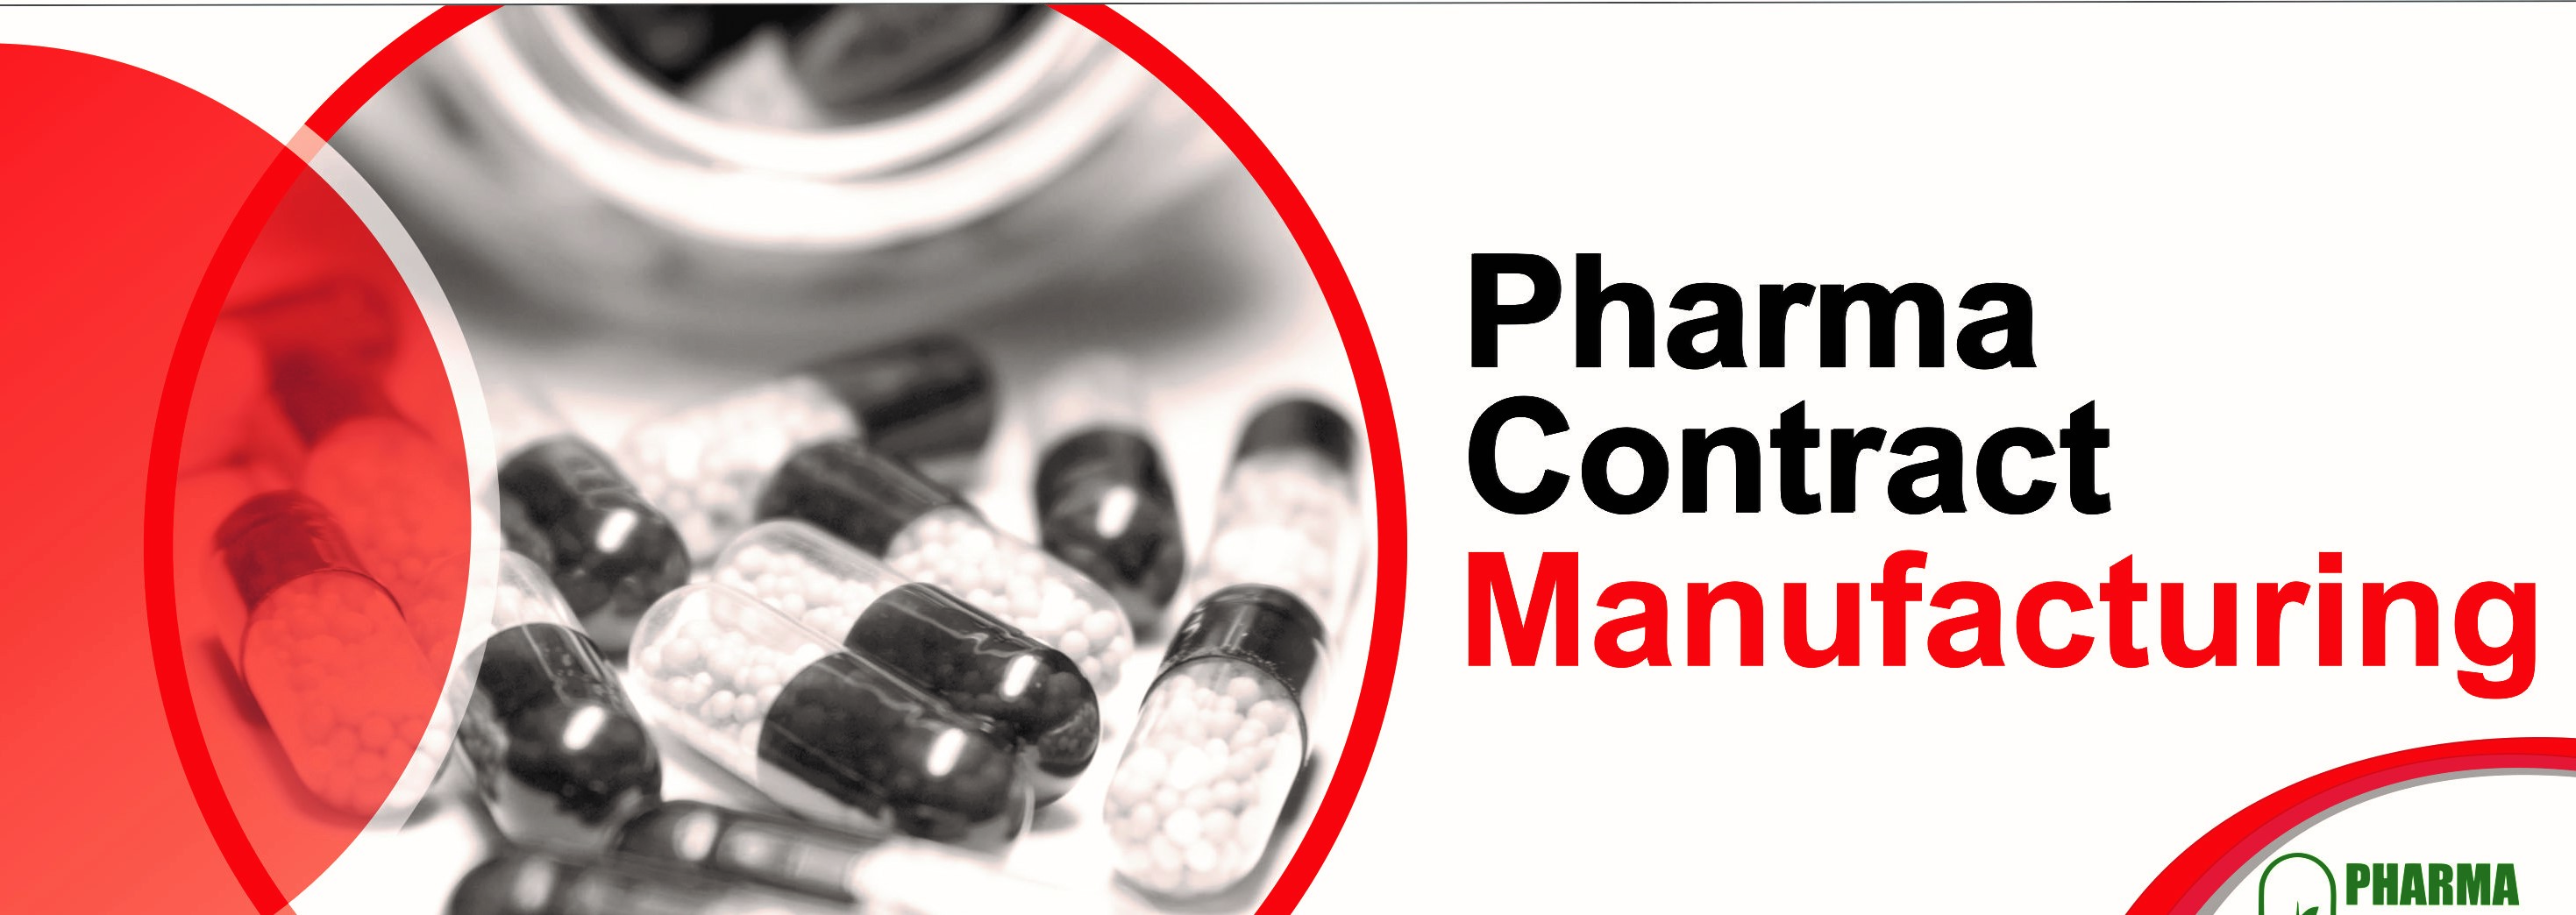 pharma contract manufacturing companies in India